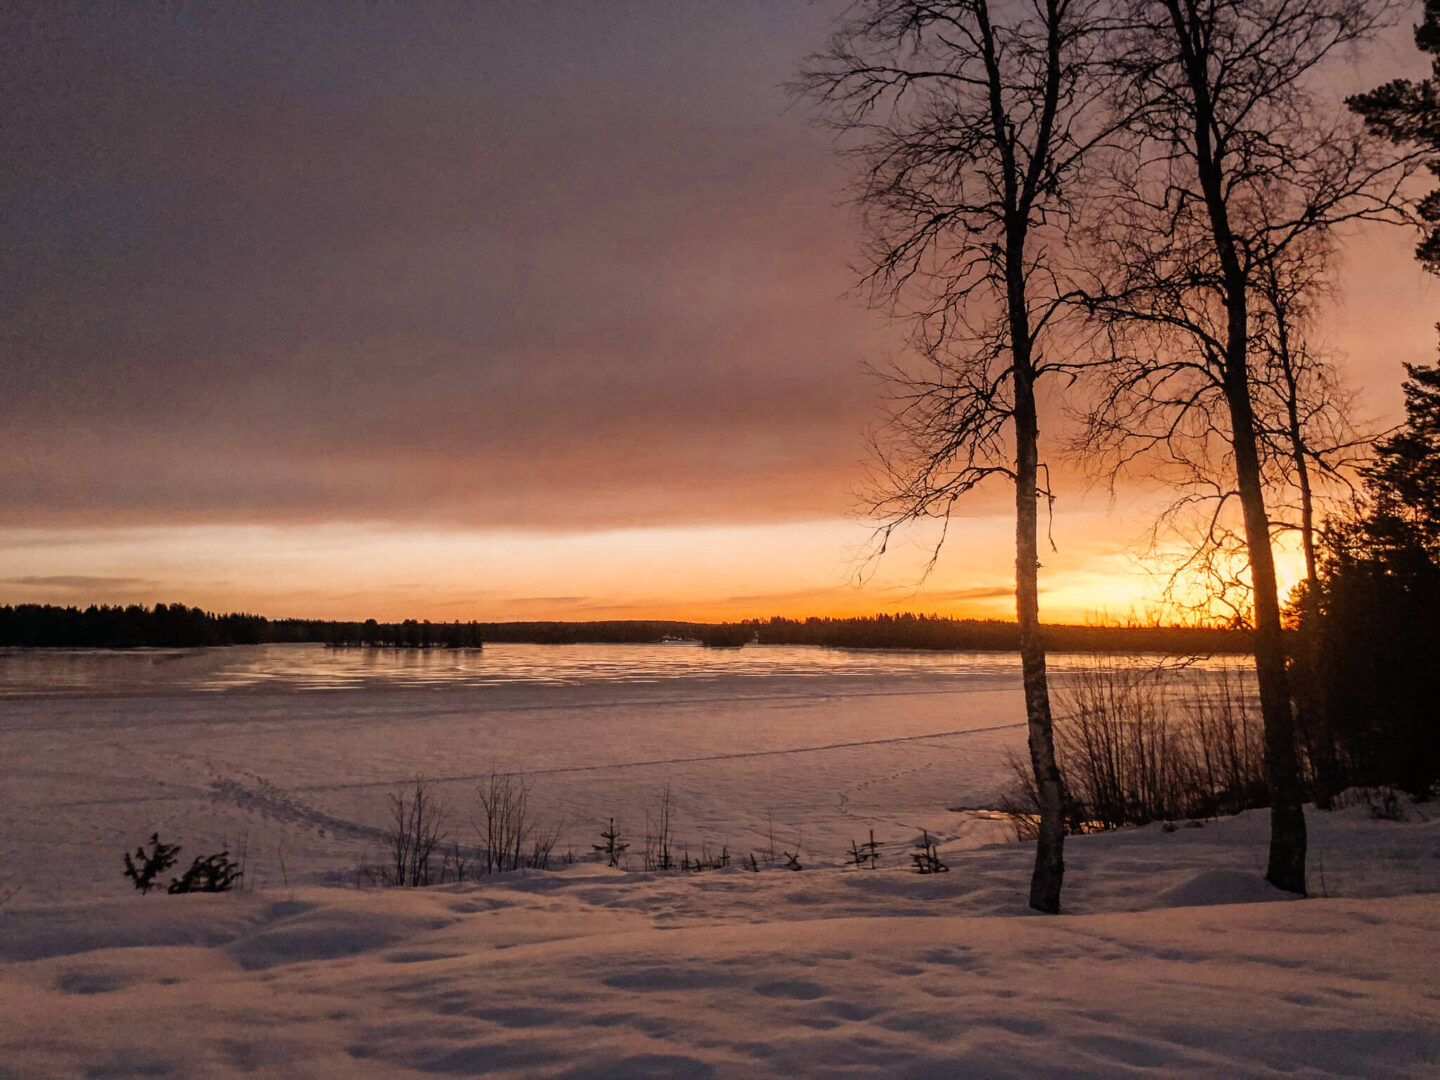 Sun setting over a frozen lake surrounded by snow